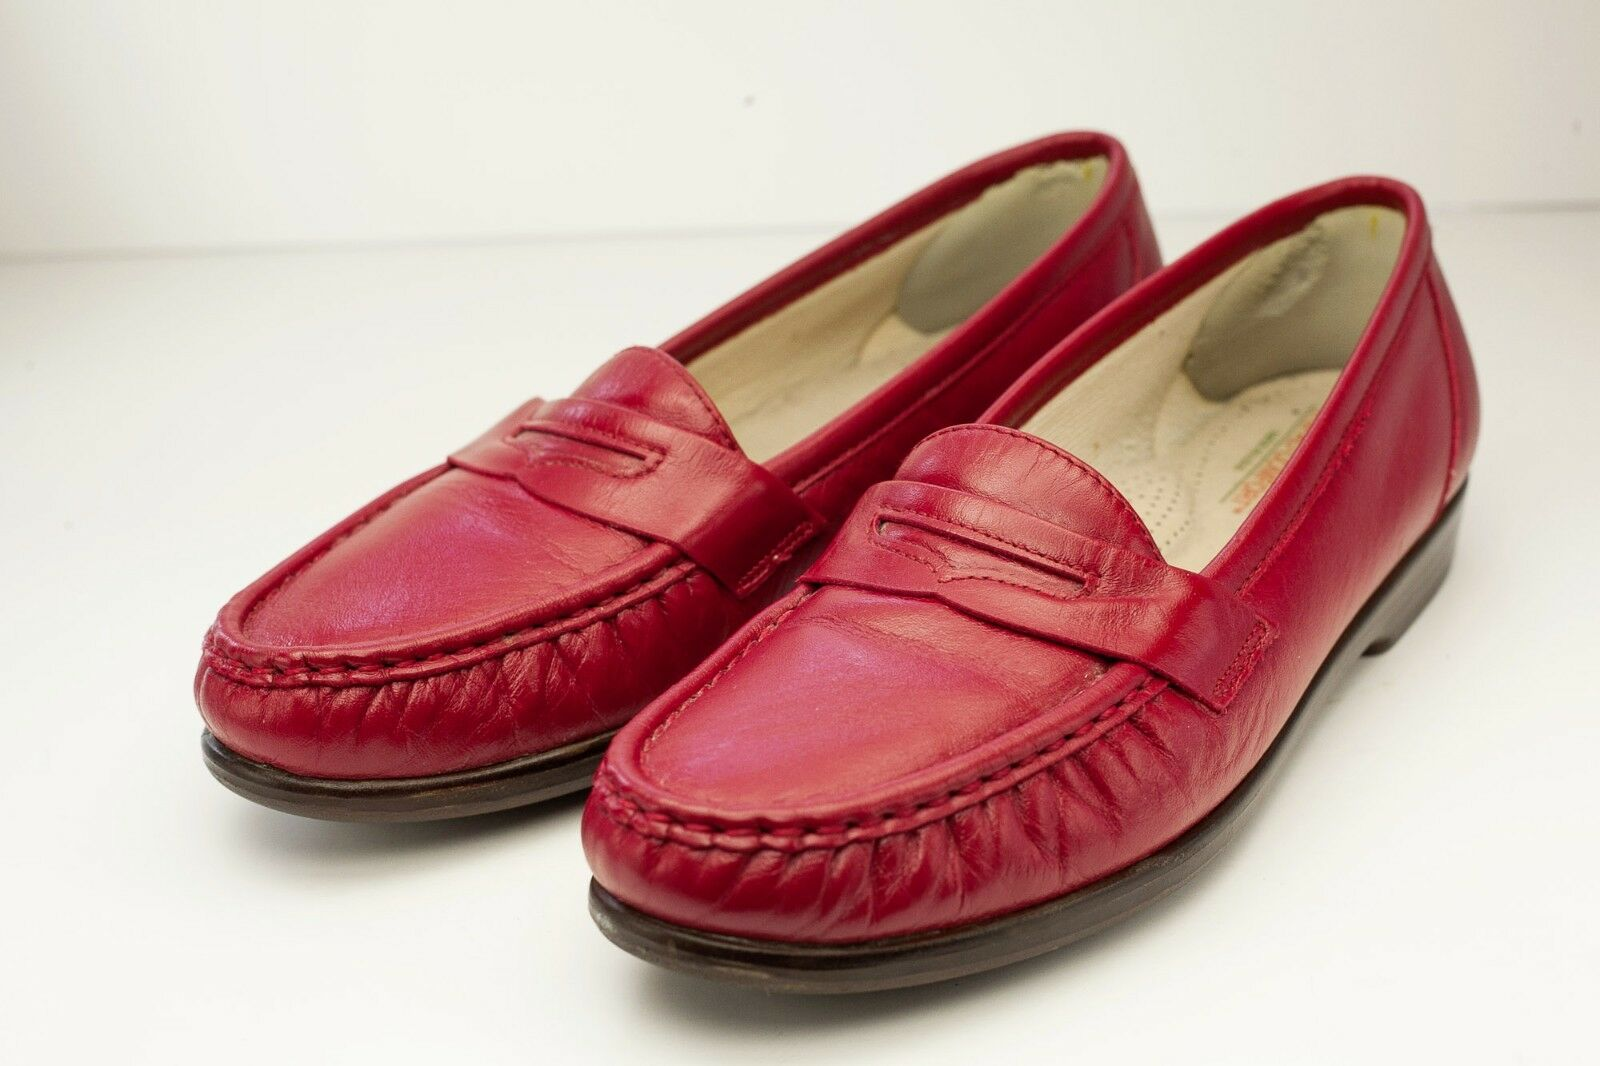 SAS 8.5 Narrow Red Slip On Penny Loafers Women's shoes